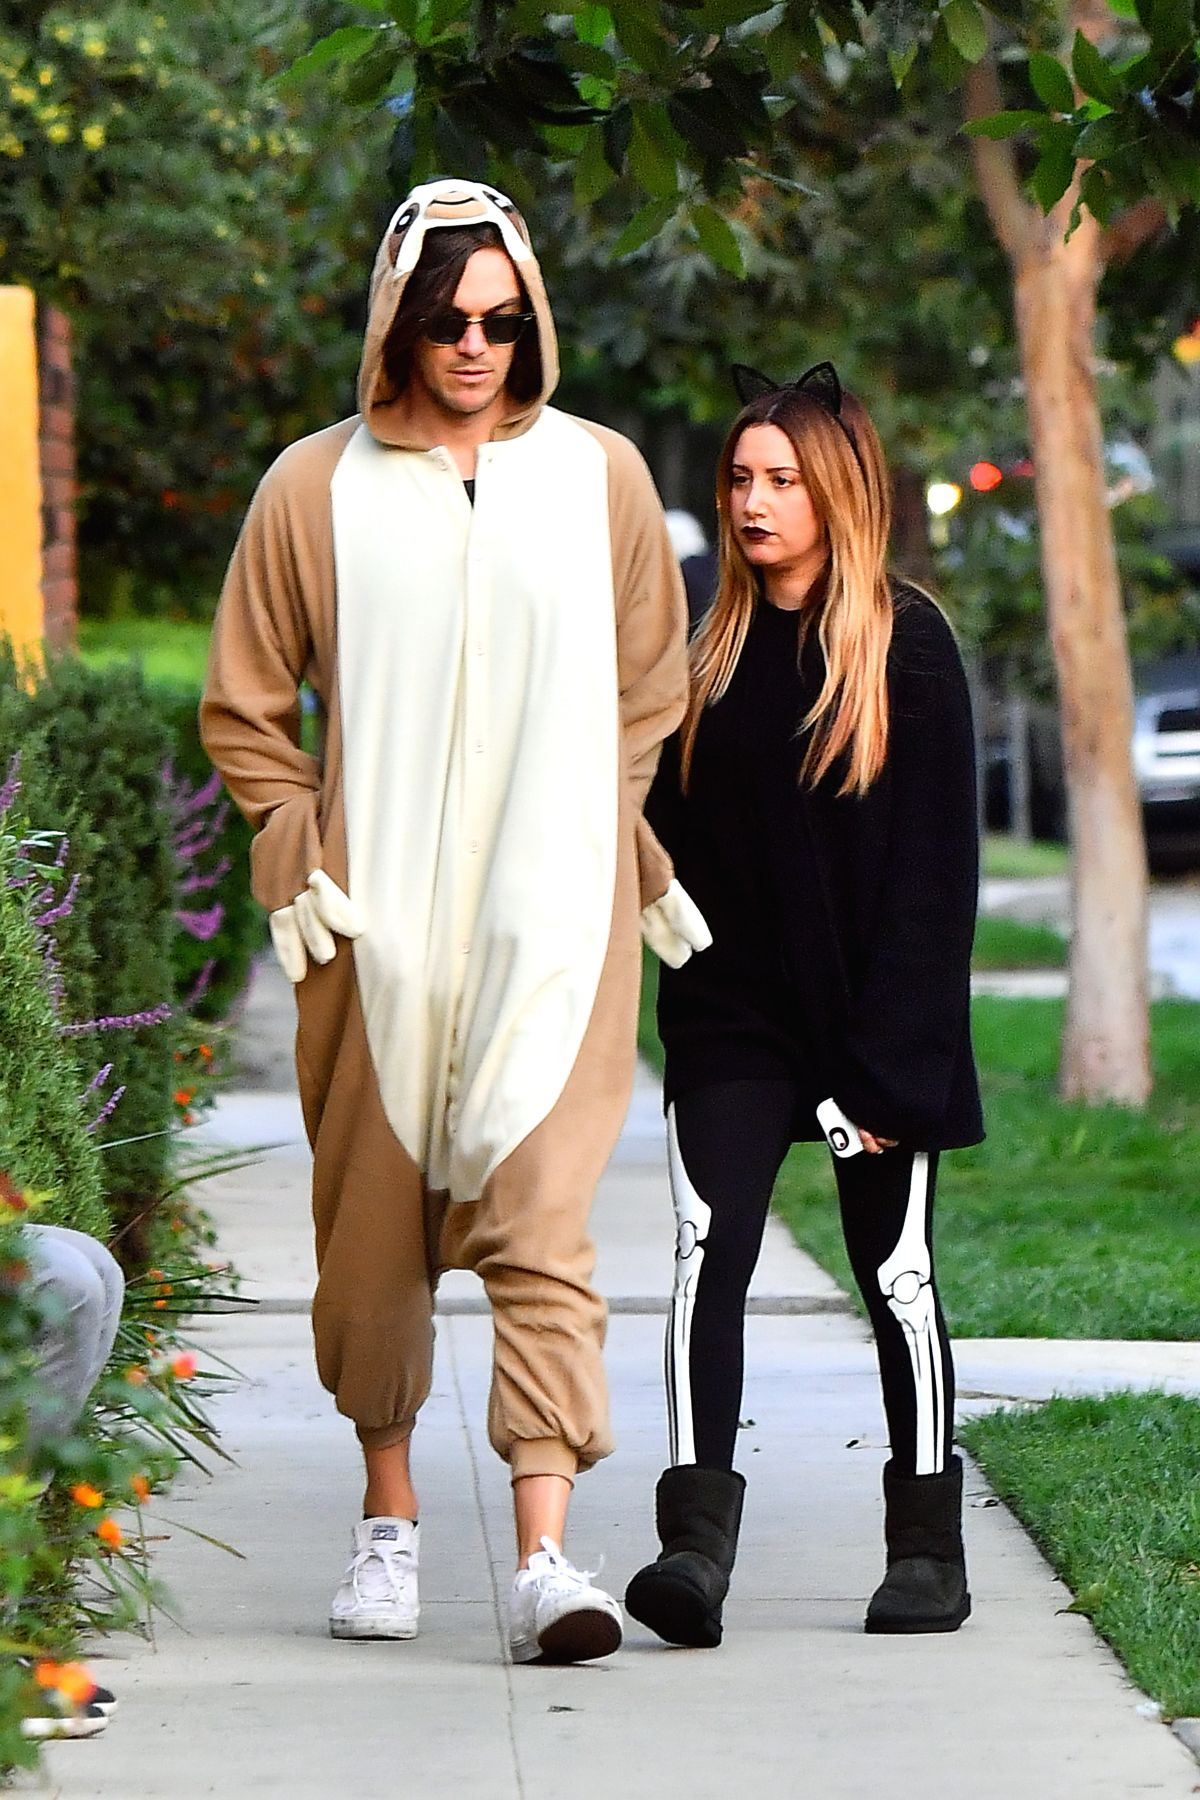 ashley tisdale out trick or treating on halloween in toluca lake 10312016 - Ashley Tisdale Halloween